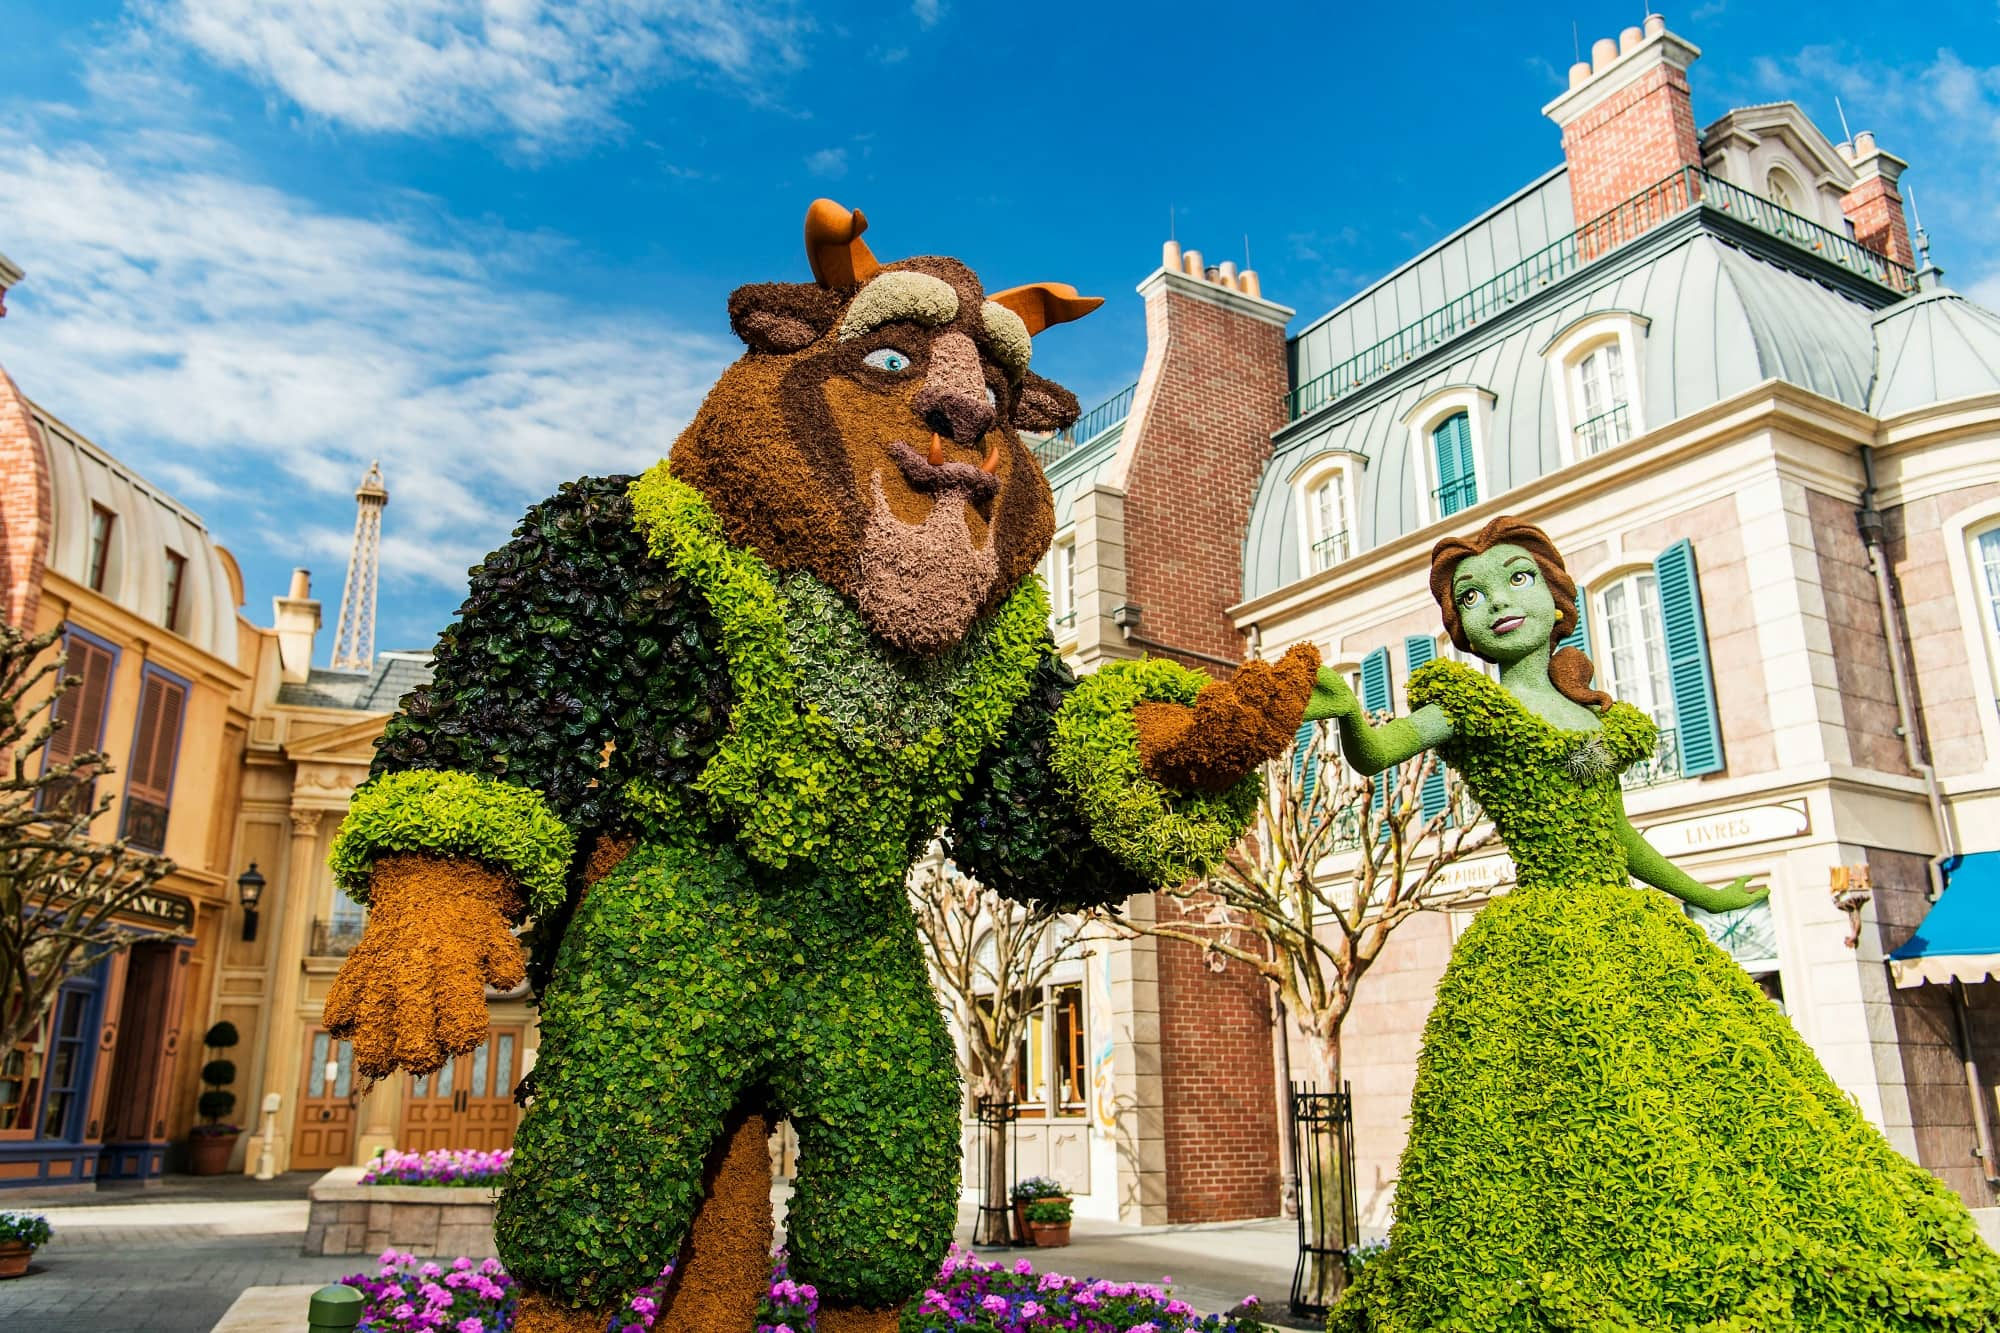 Beauty and the Beast topiaries in the France pavilion during the Epcot International Flower & Garden Festival